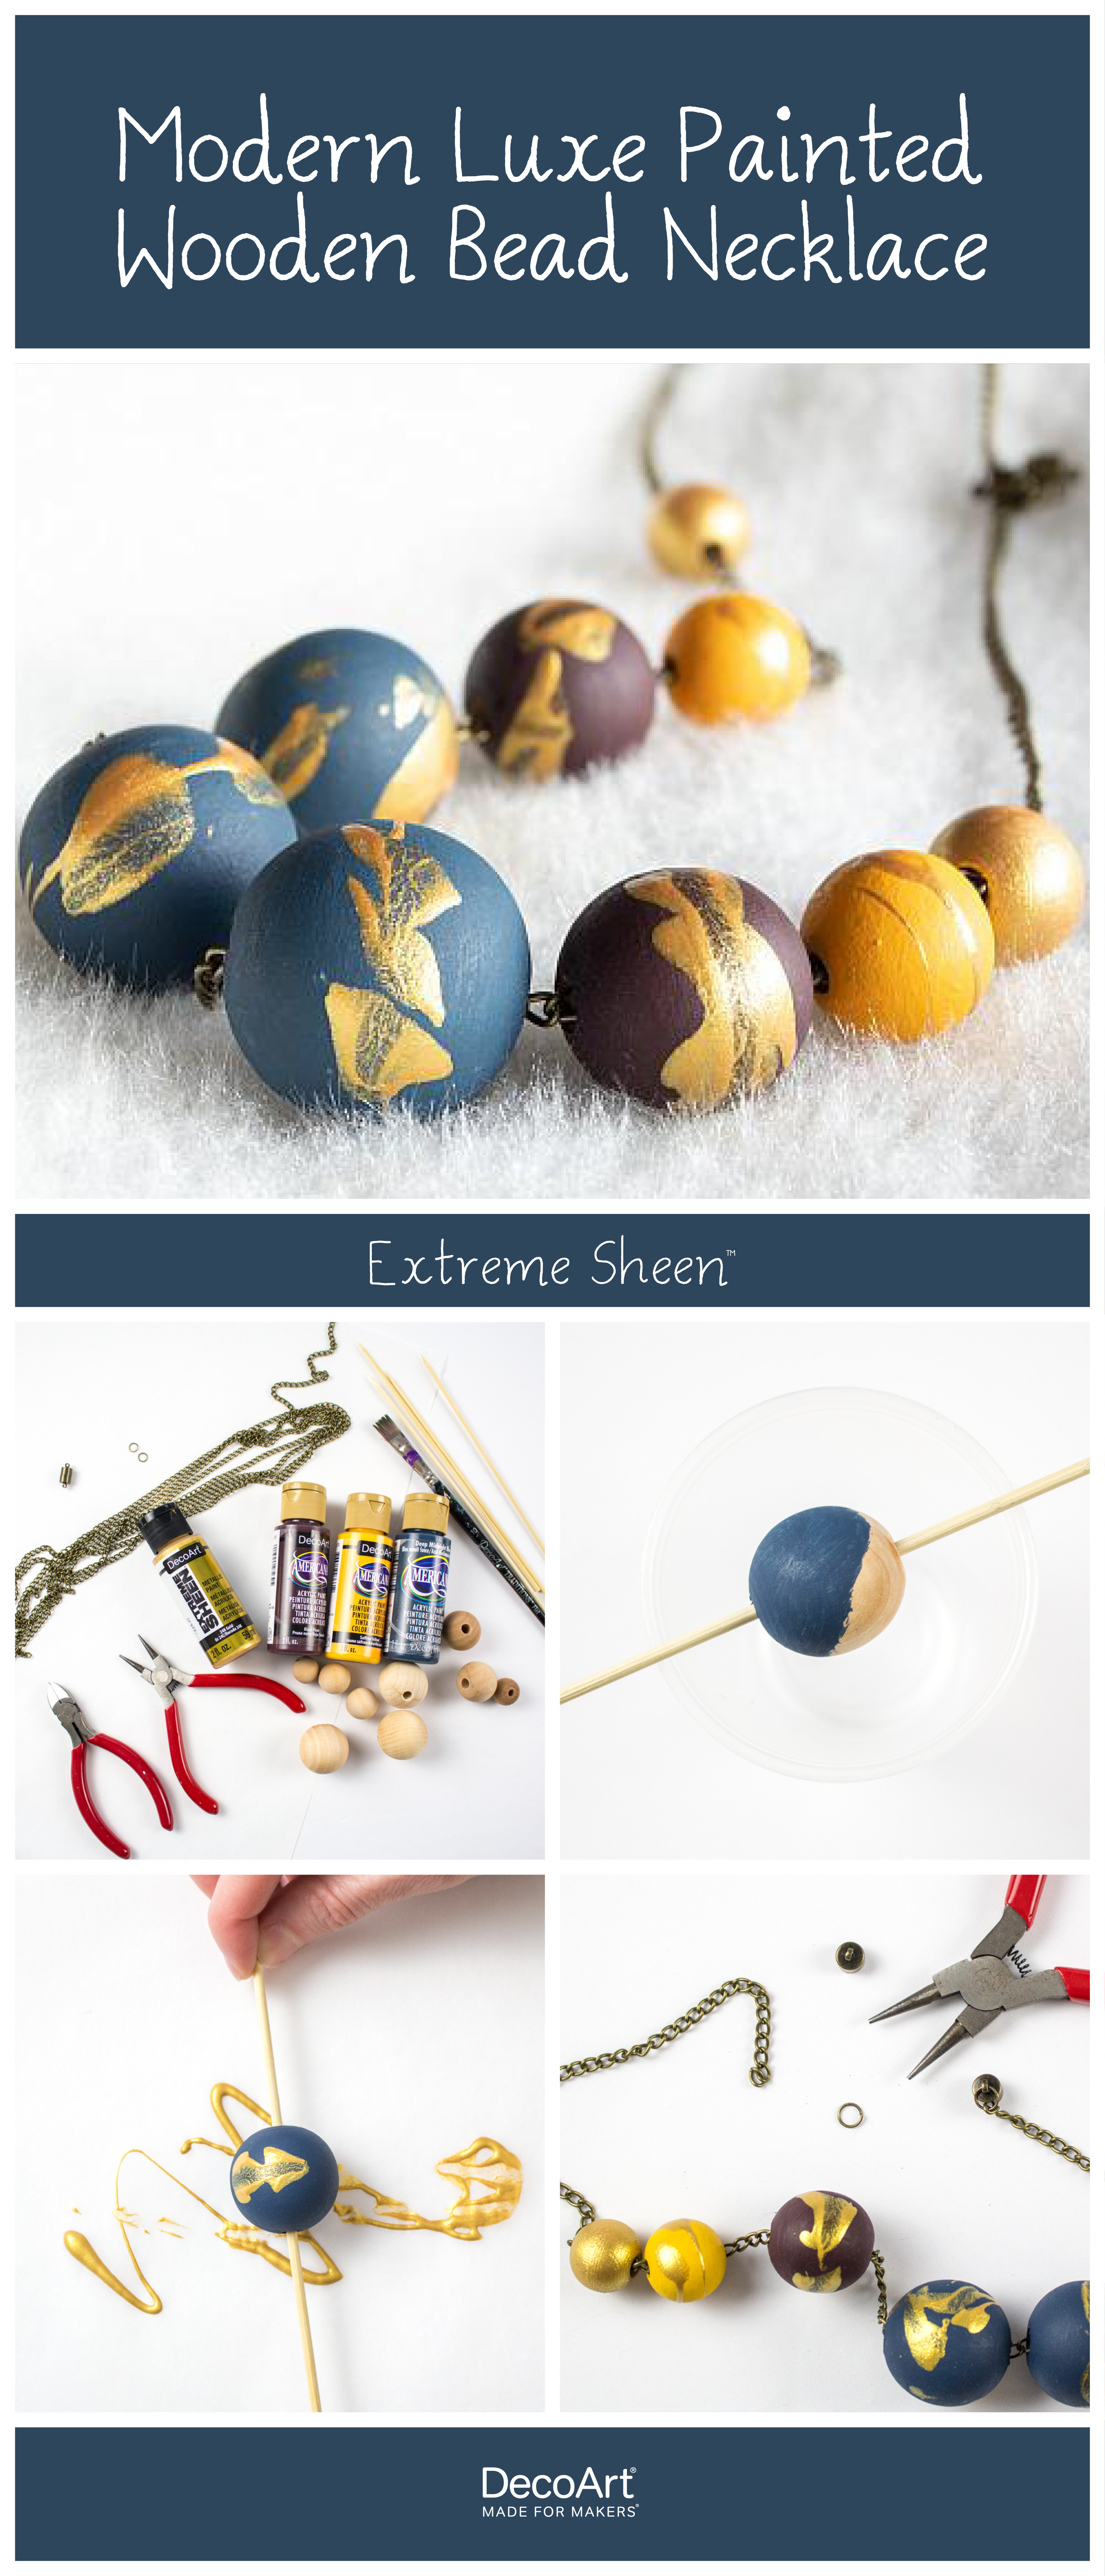 Modern Luxe Painted Wooden Bead Necklace